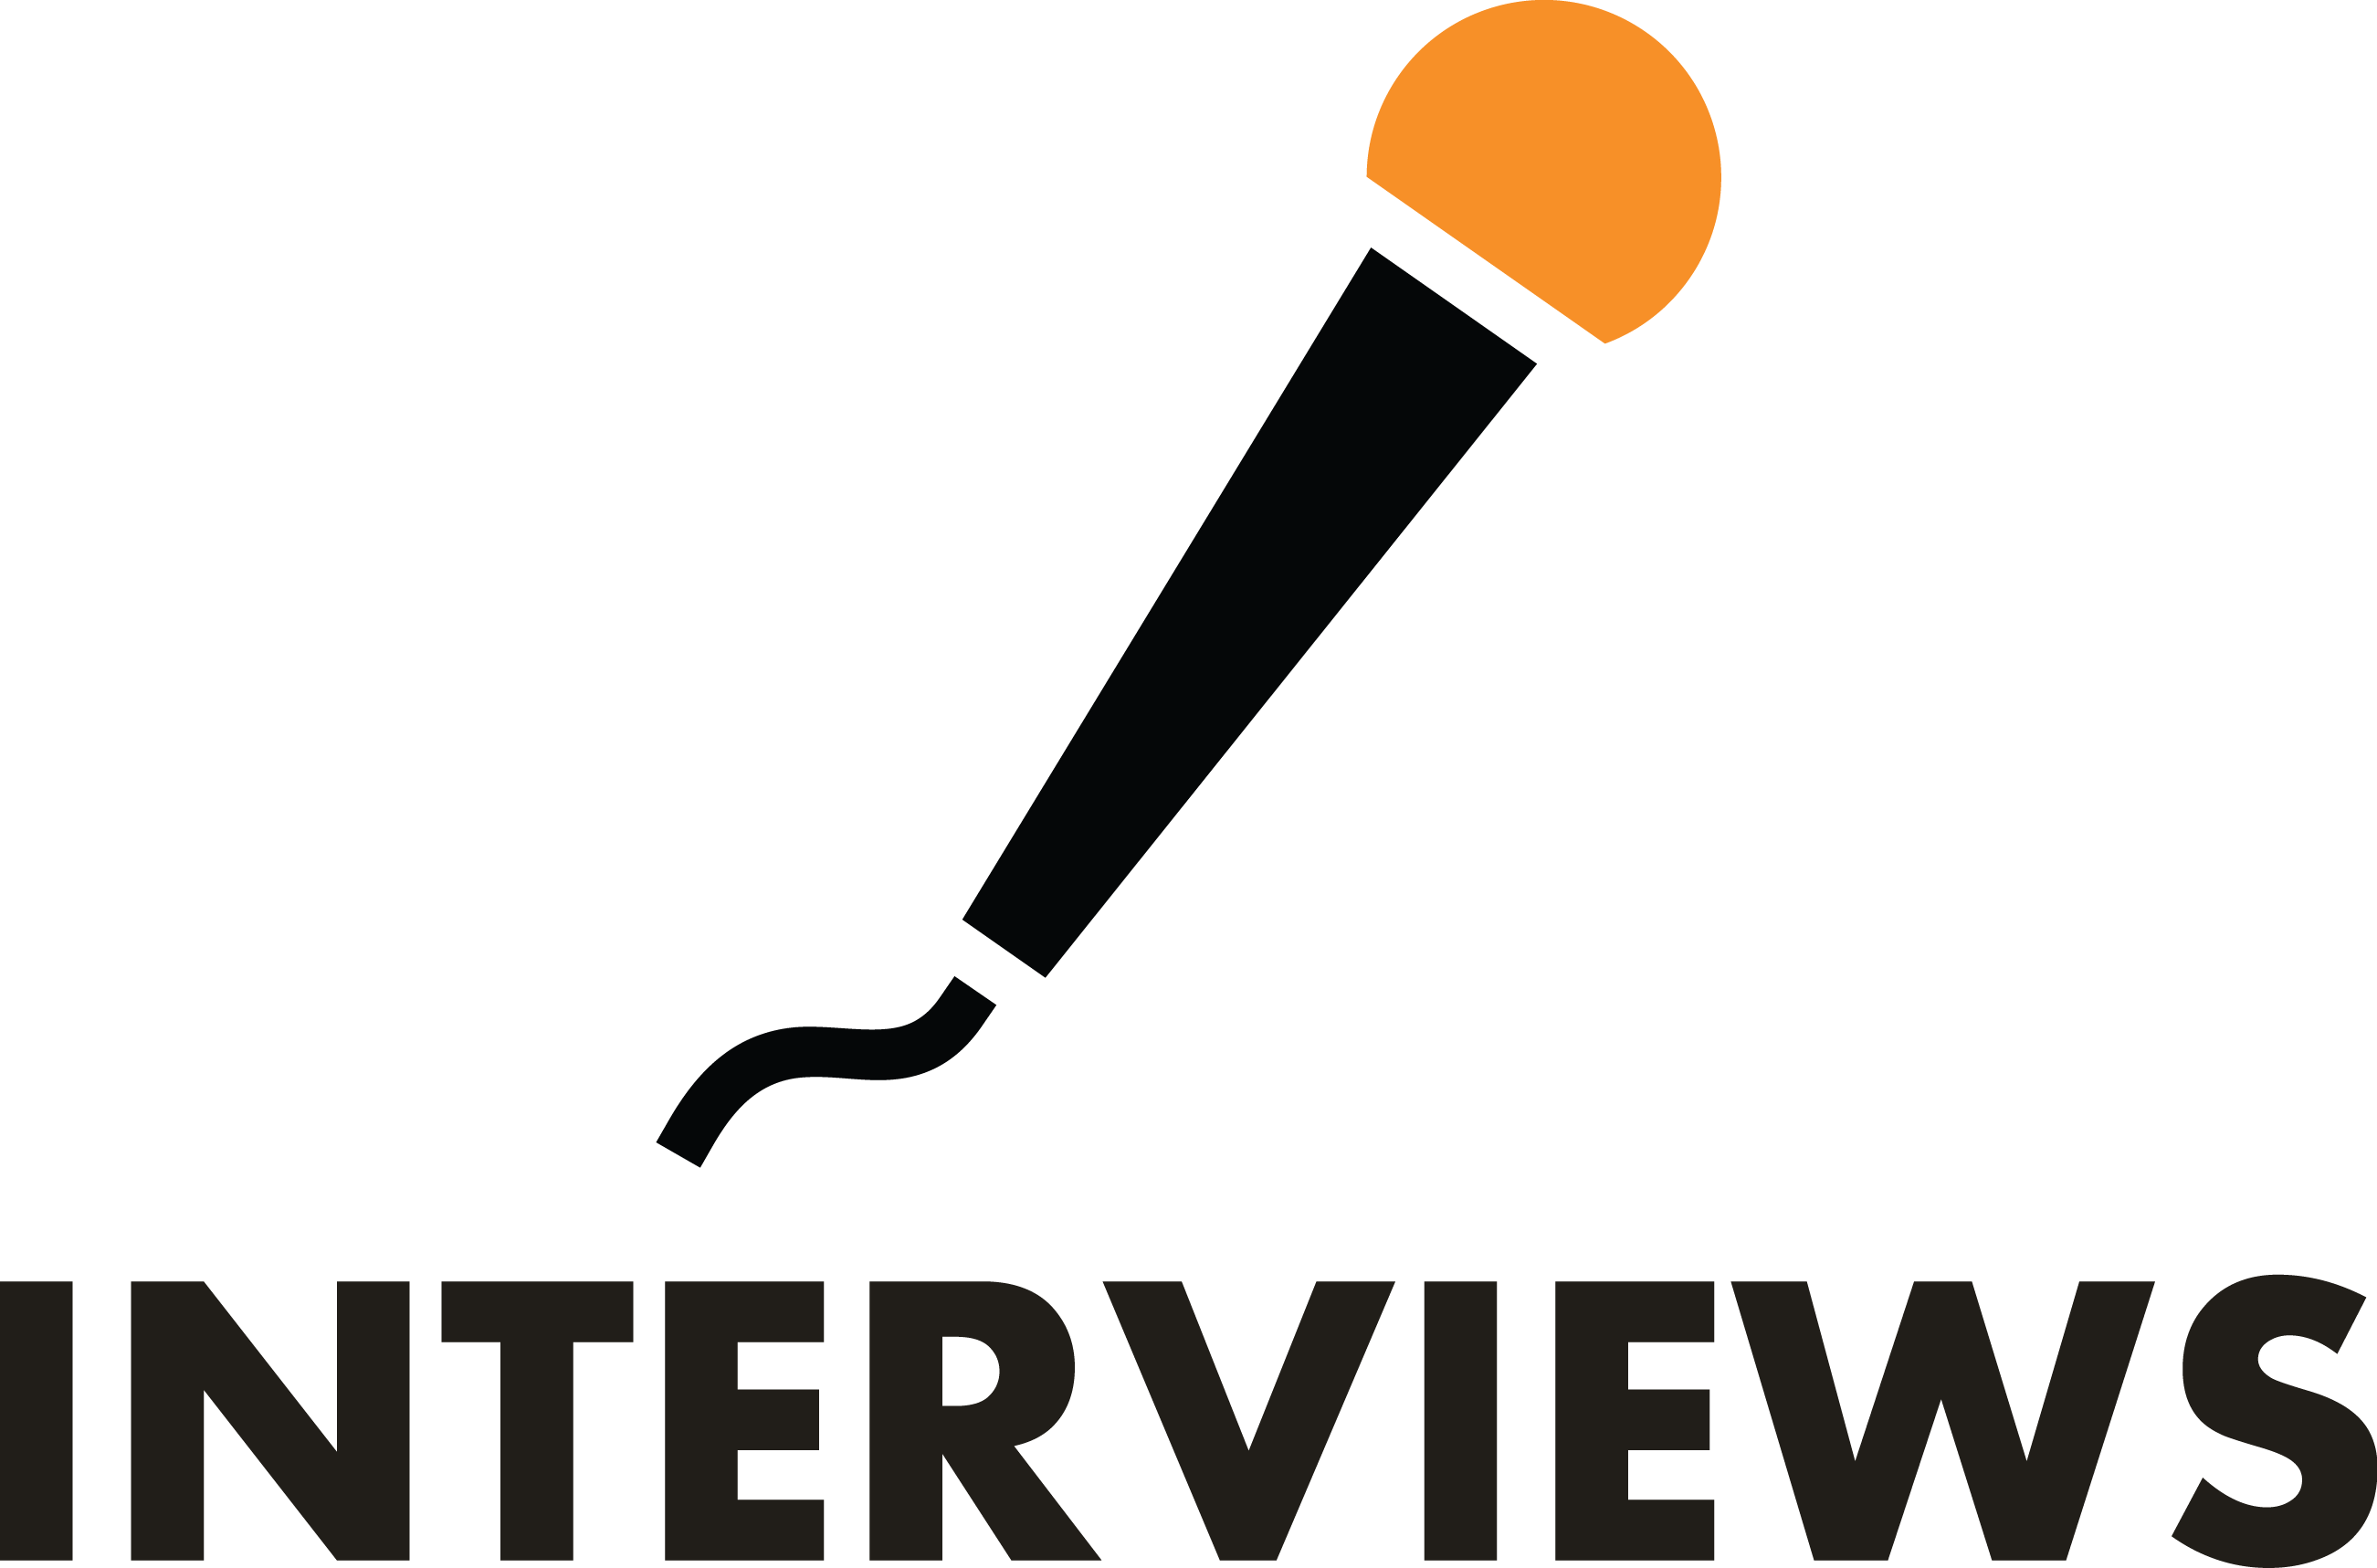 Interview-PNG-Image